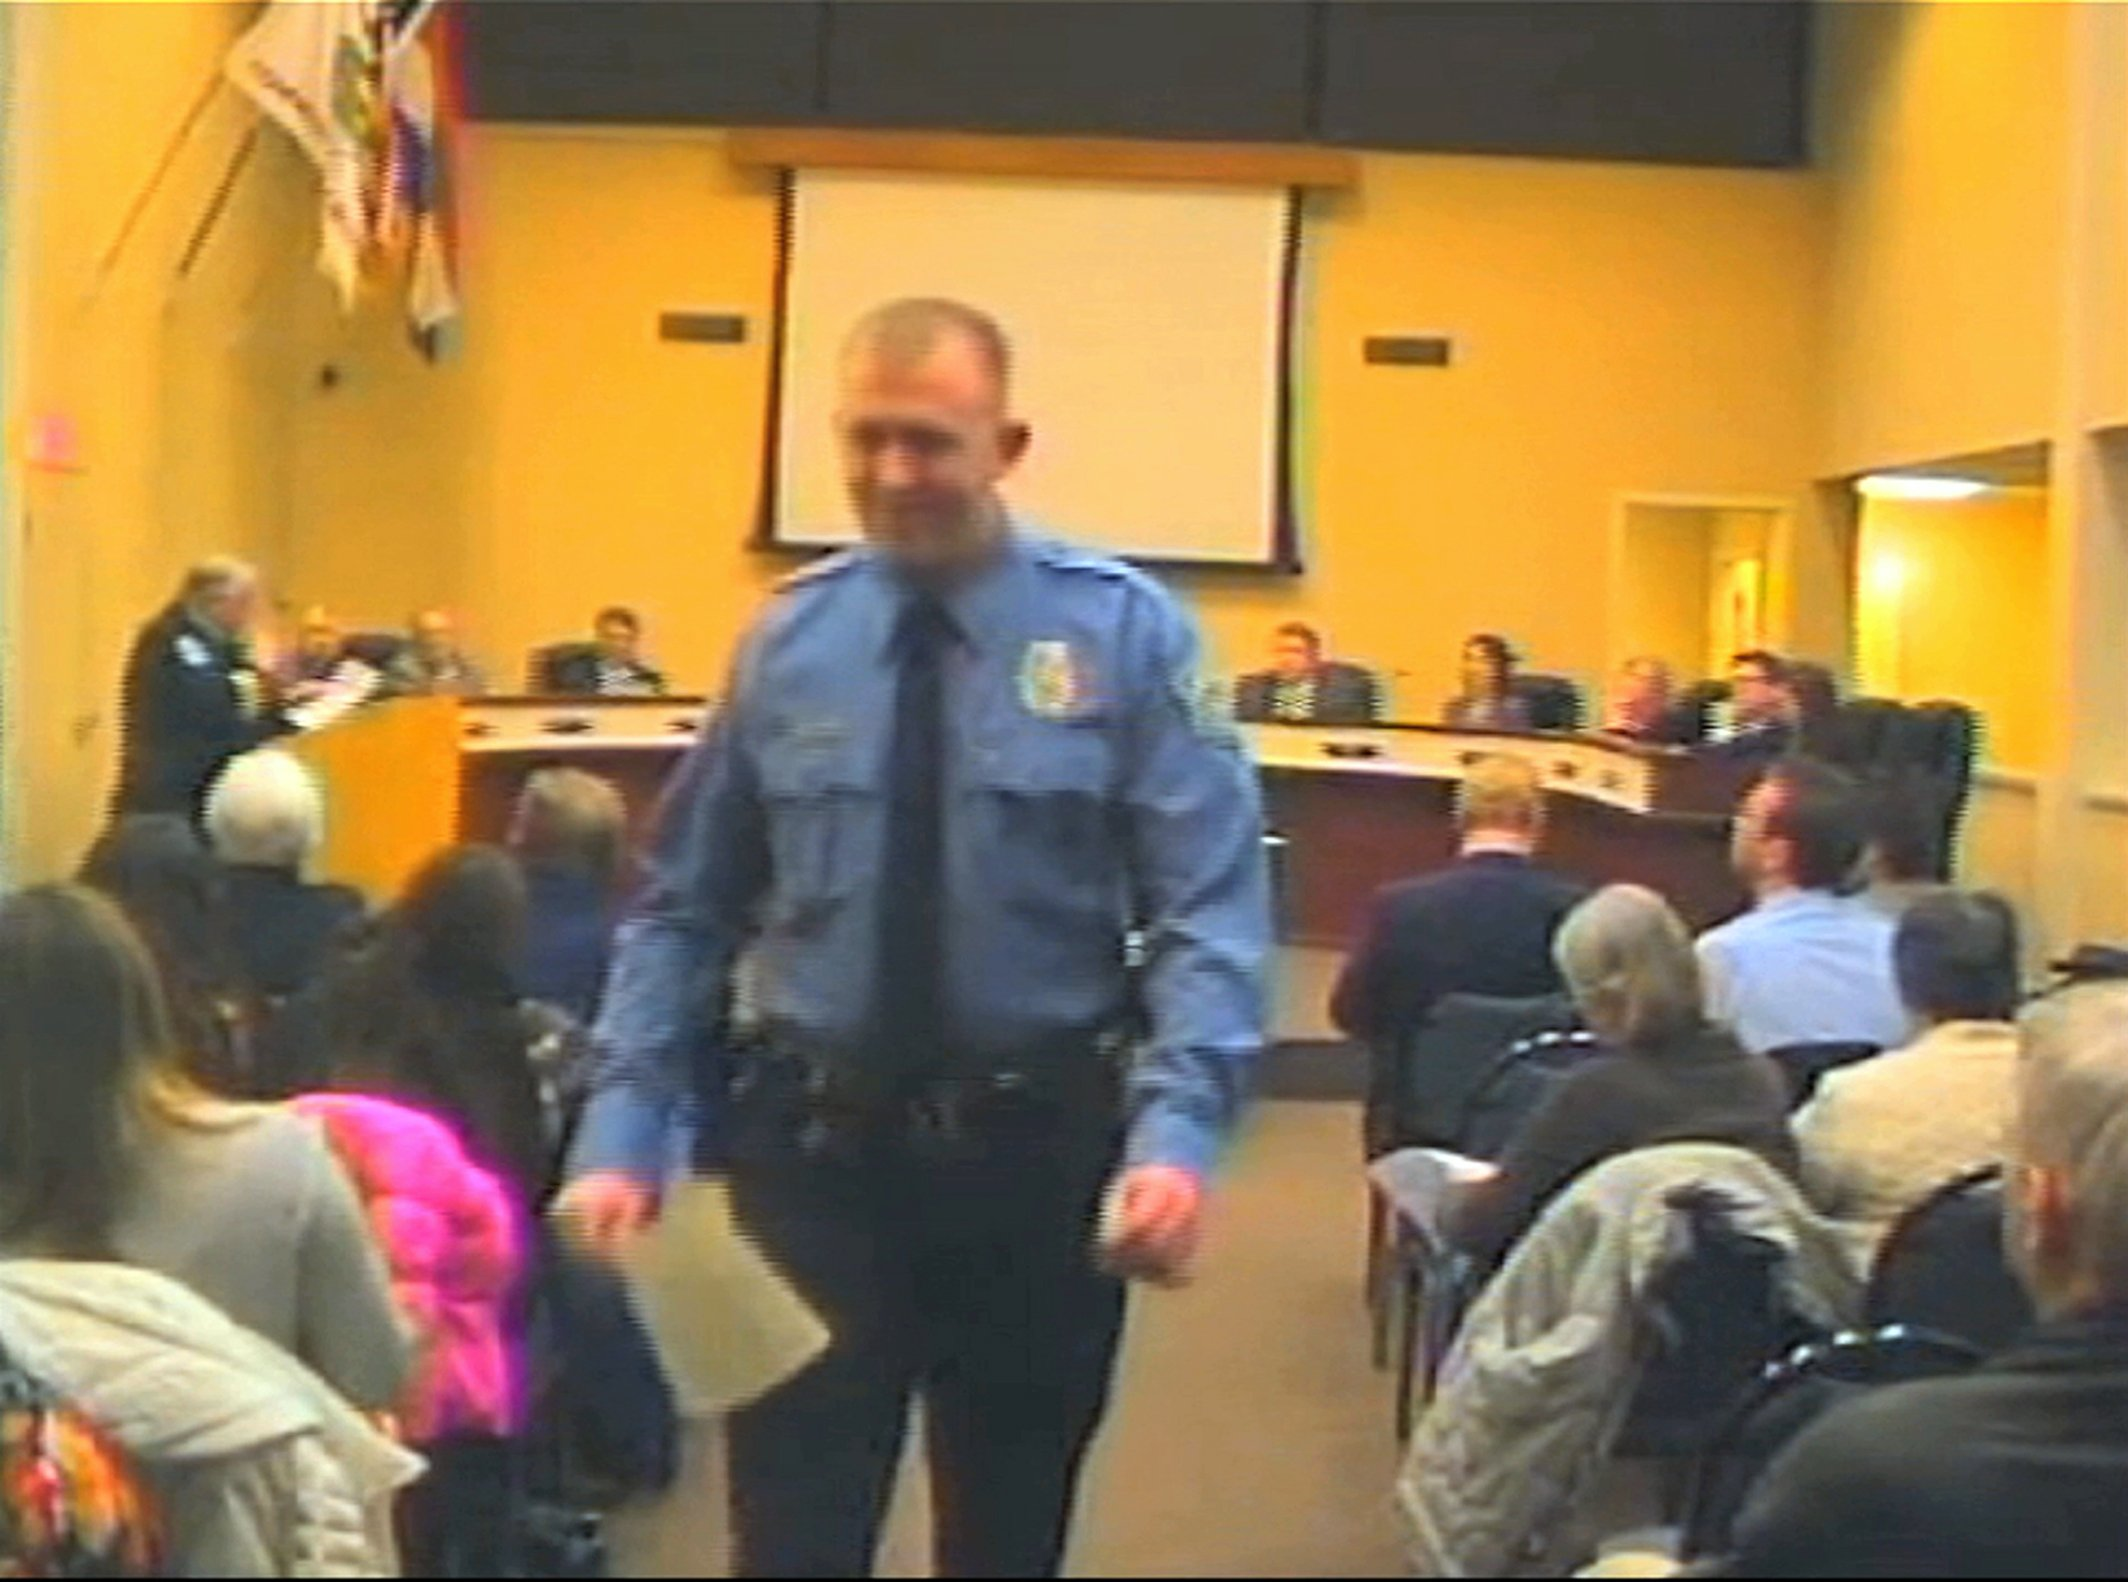 Officer Darren Wilson attends a city council meeting in Ferguson on Feb. 11, 2014 in this image released from video by the City of Ferguson, Mo.